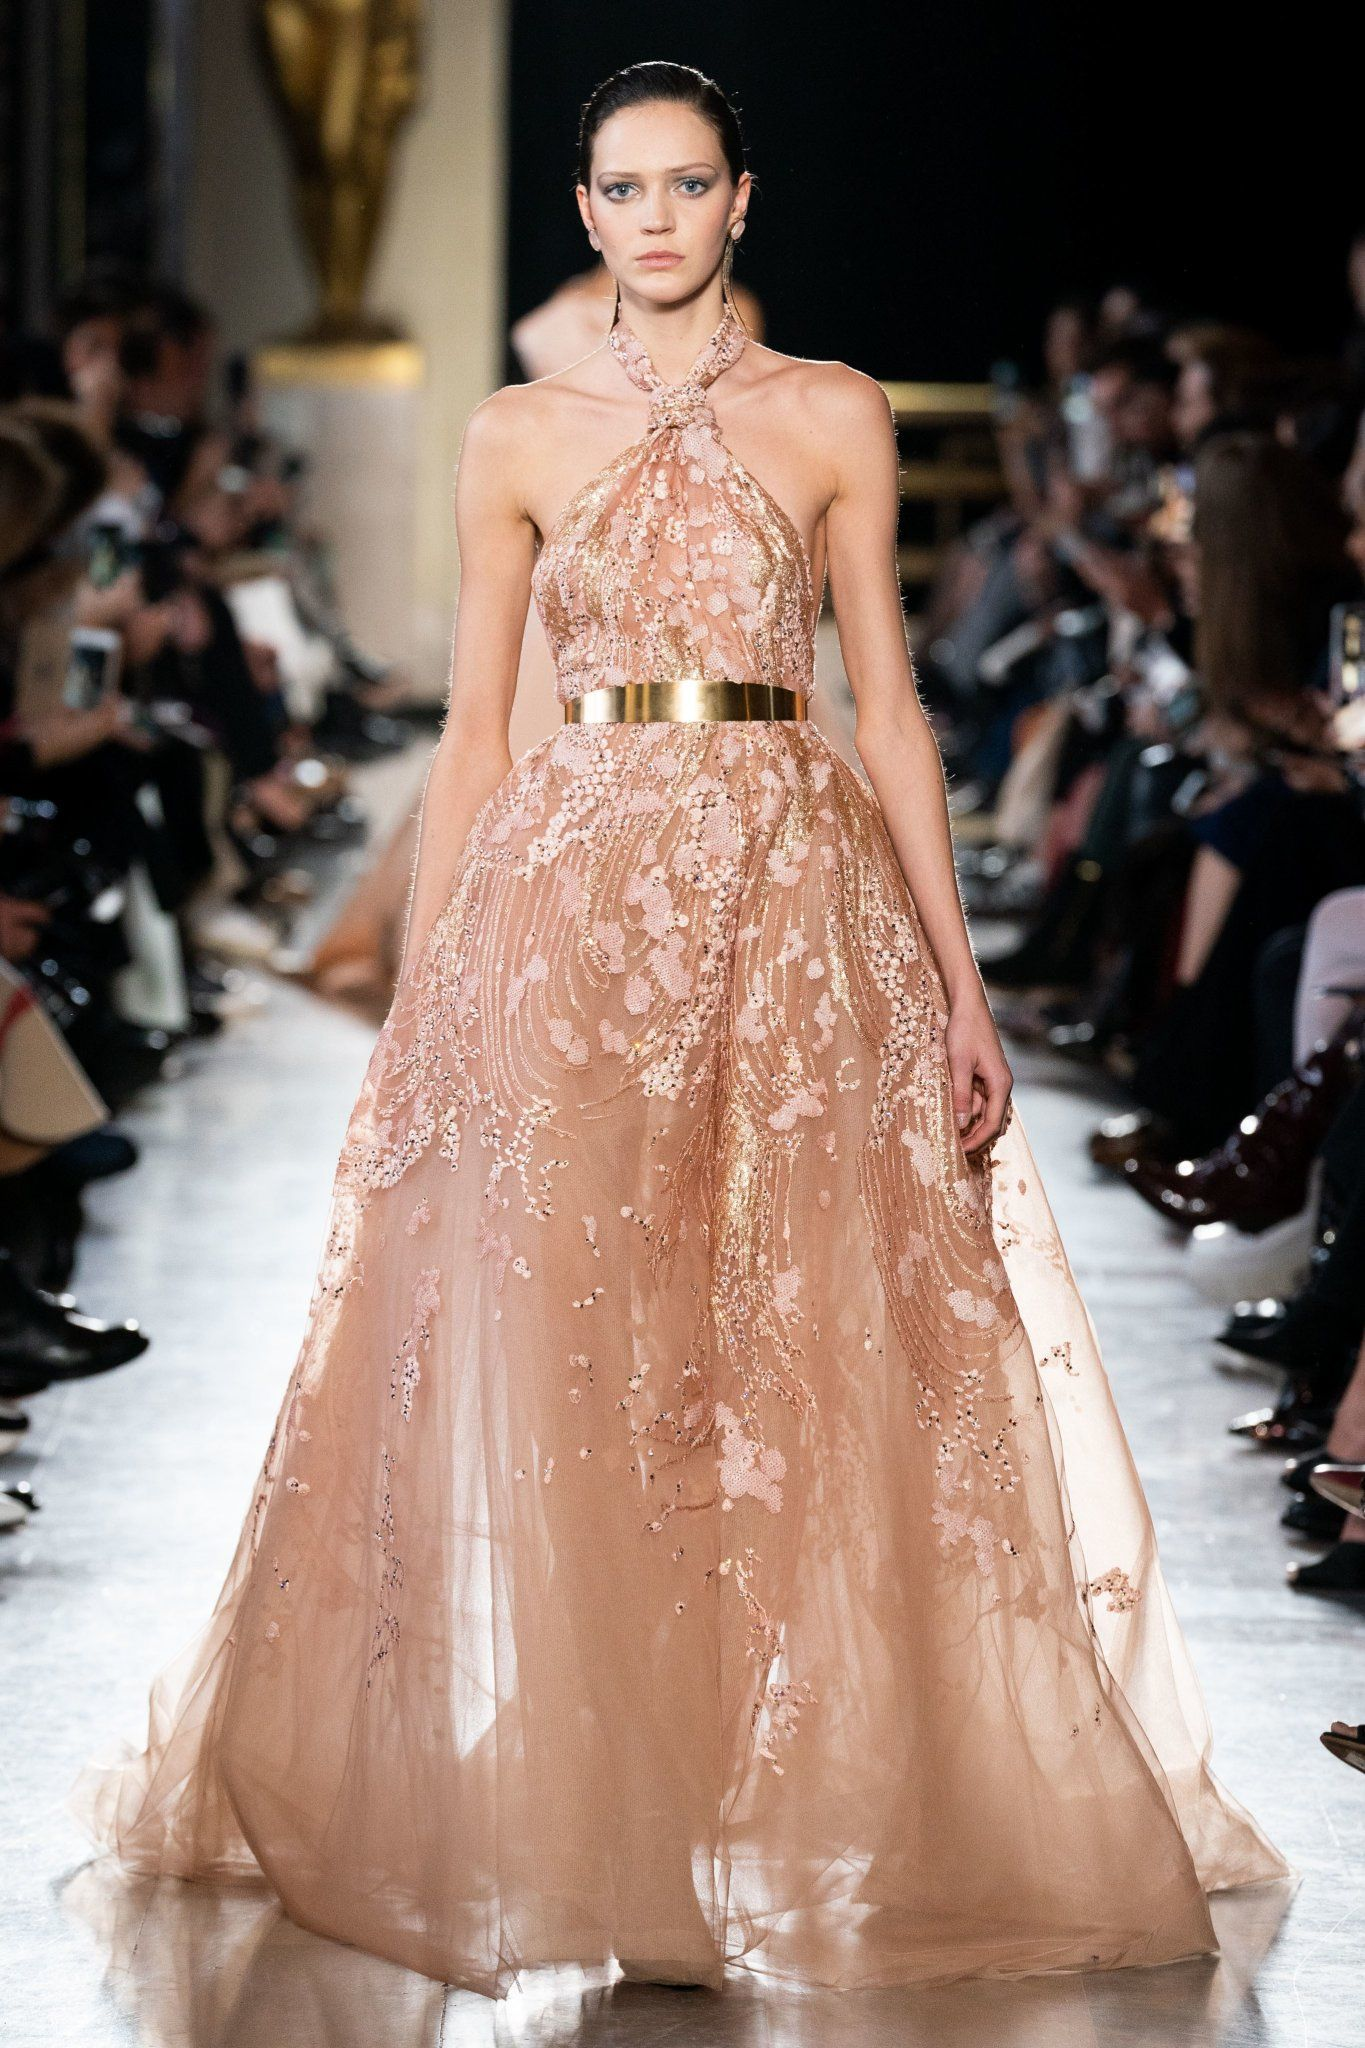 𝚋𝚎𝚕𝚕𝚊 on in 2019 | High Queen | Elie saab couture